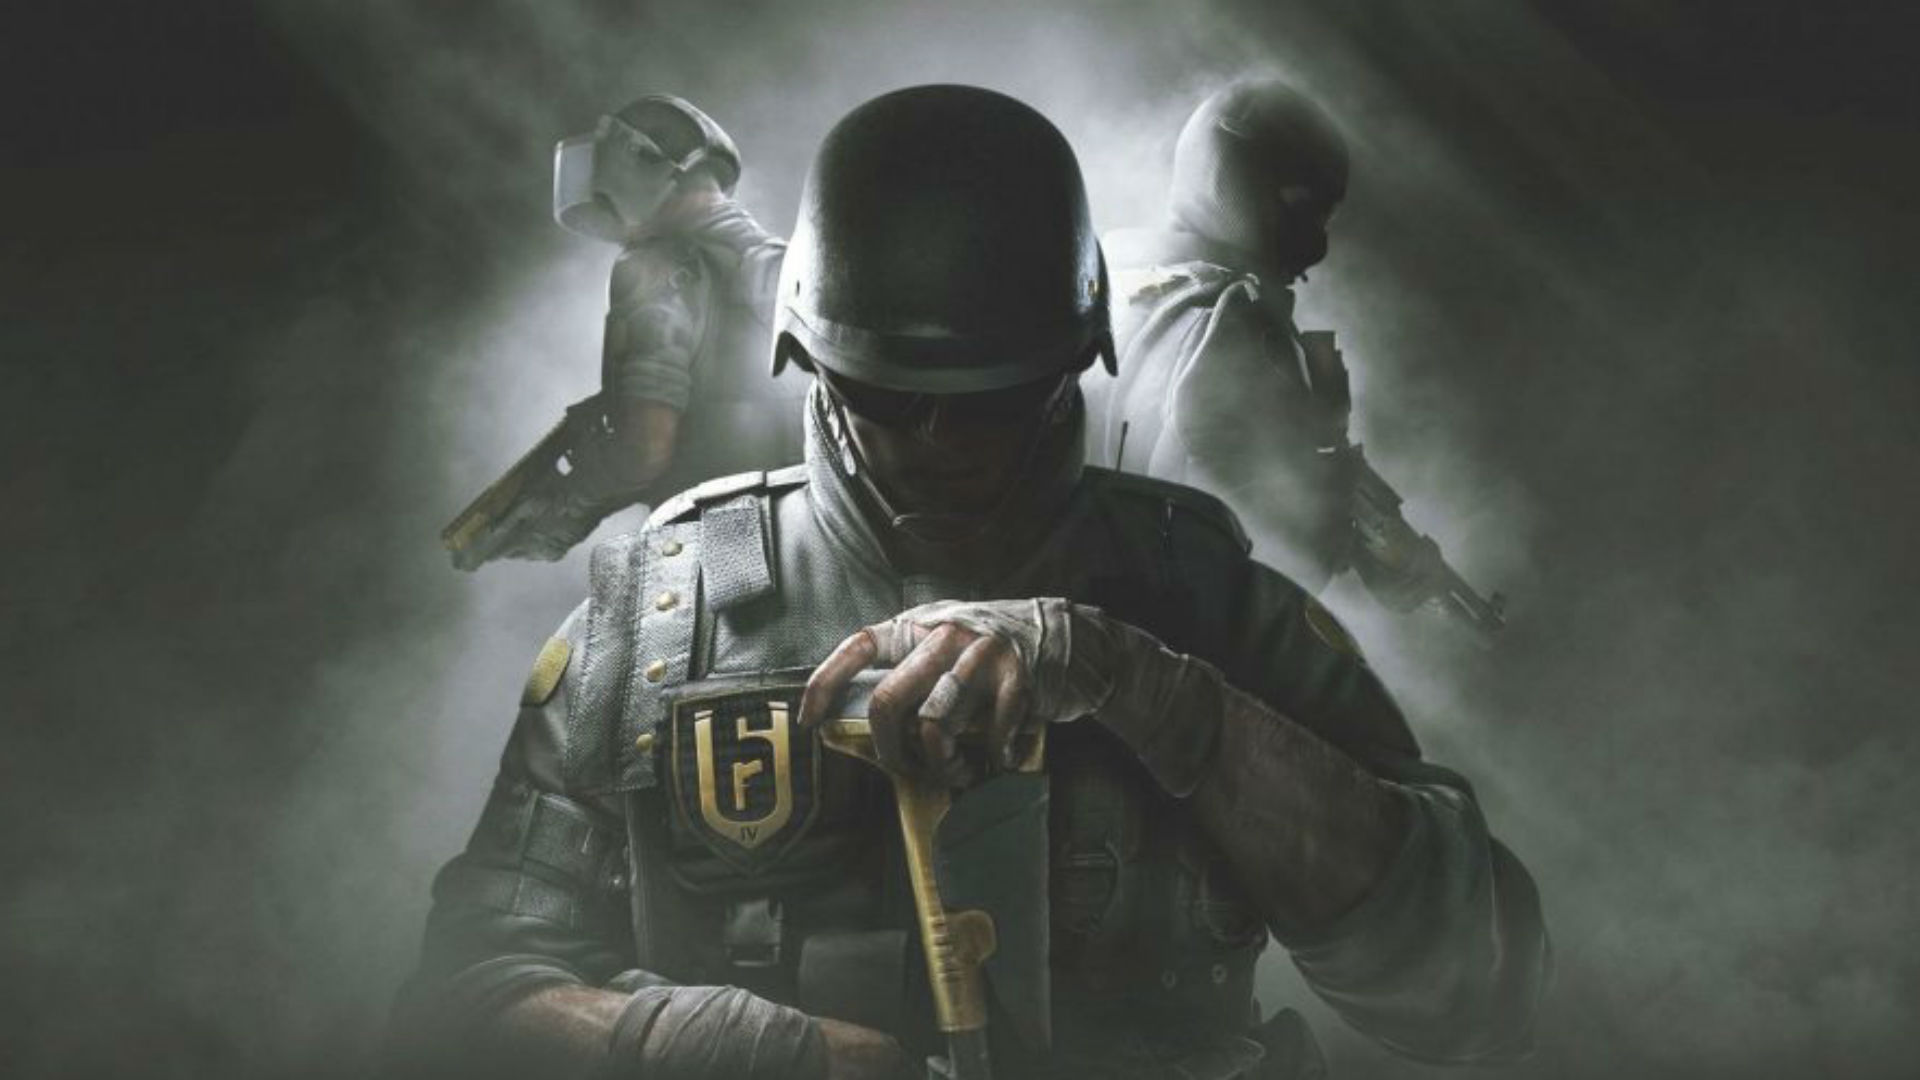 Here Is What You Need To Know About Tom Clancy's Rainbow Six Siege Year 4 Seasons 2 To 4